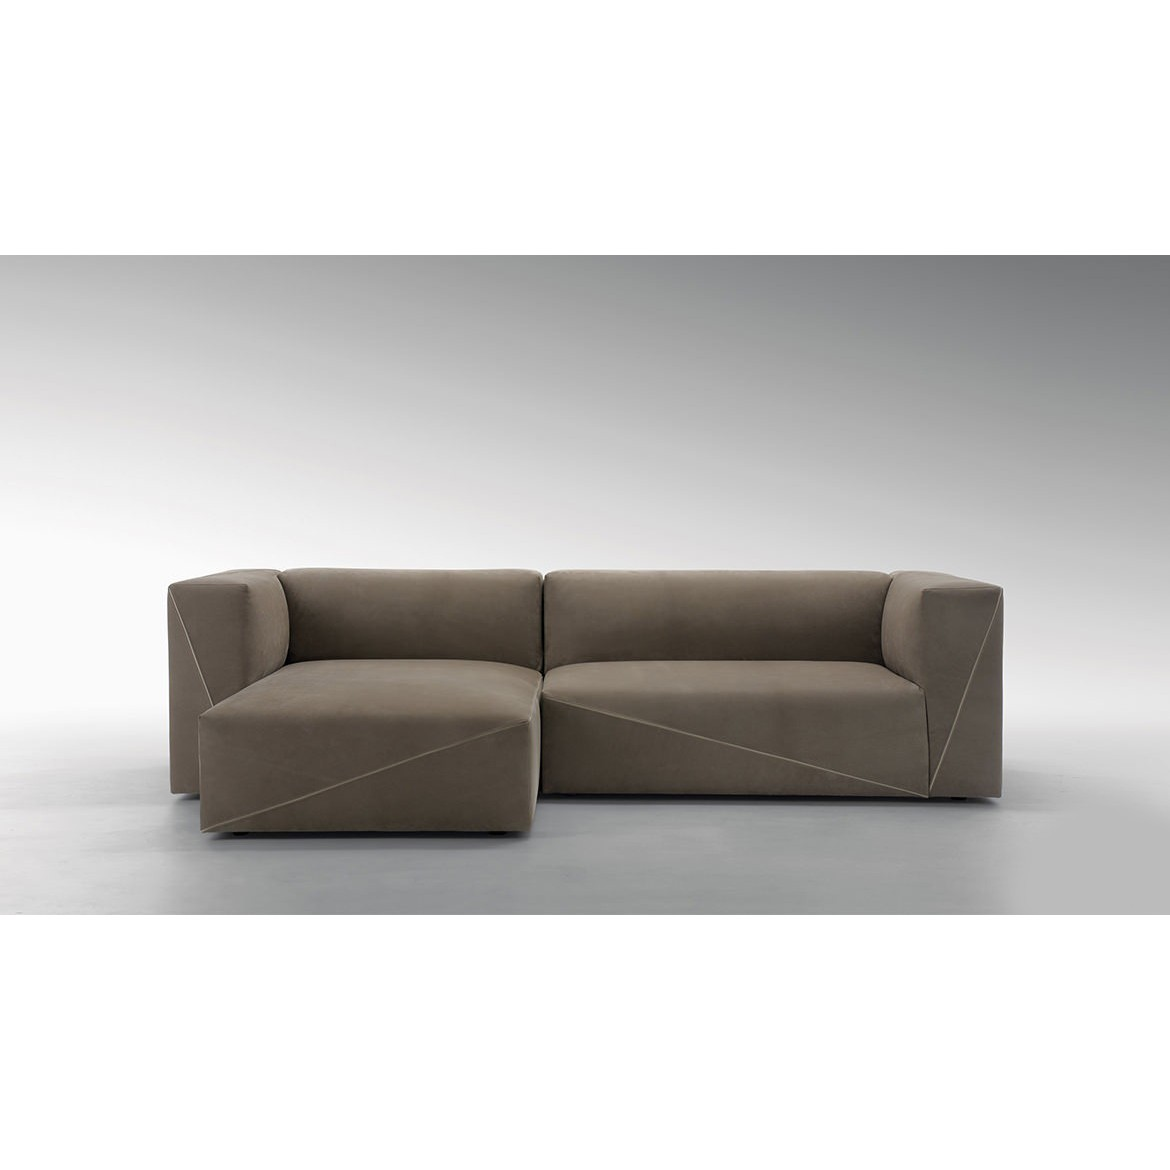 Диван, стиль хай-тек, дизайн Fendi Casa, модель Diagonal Sectional Sofa